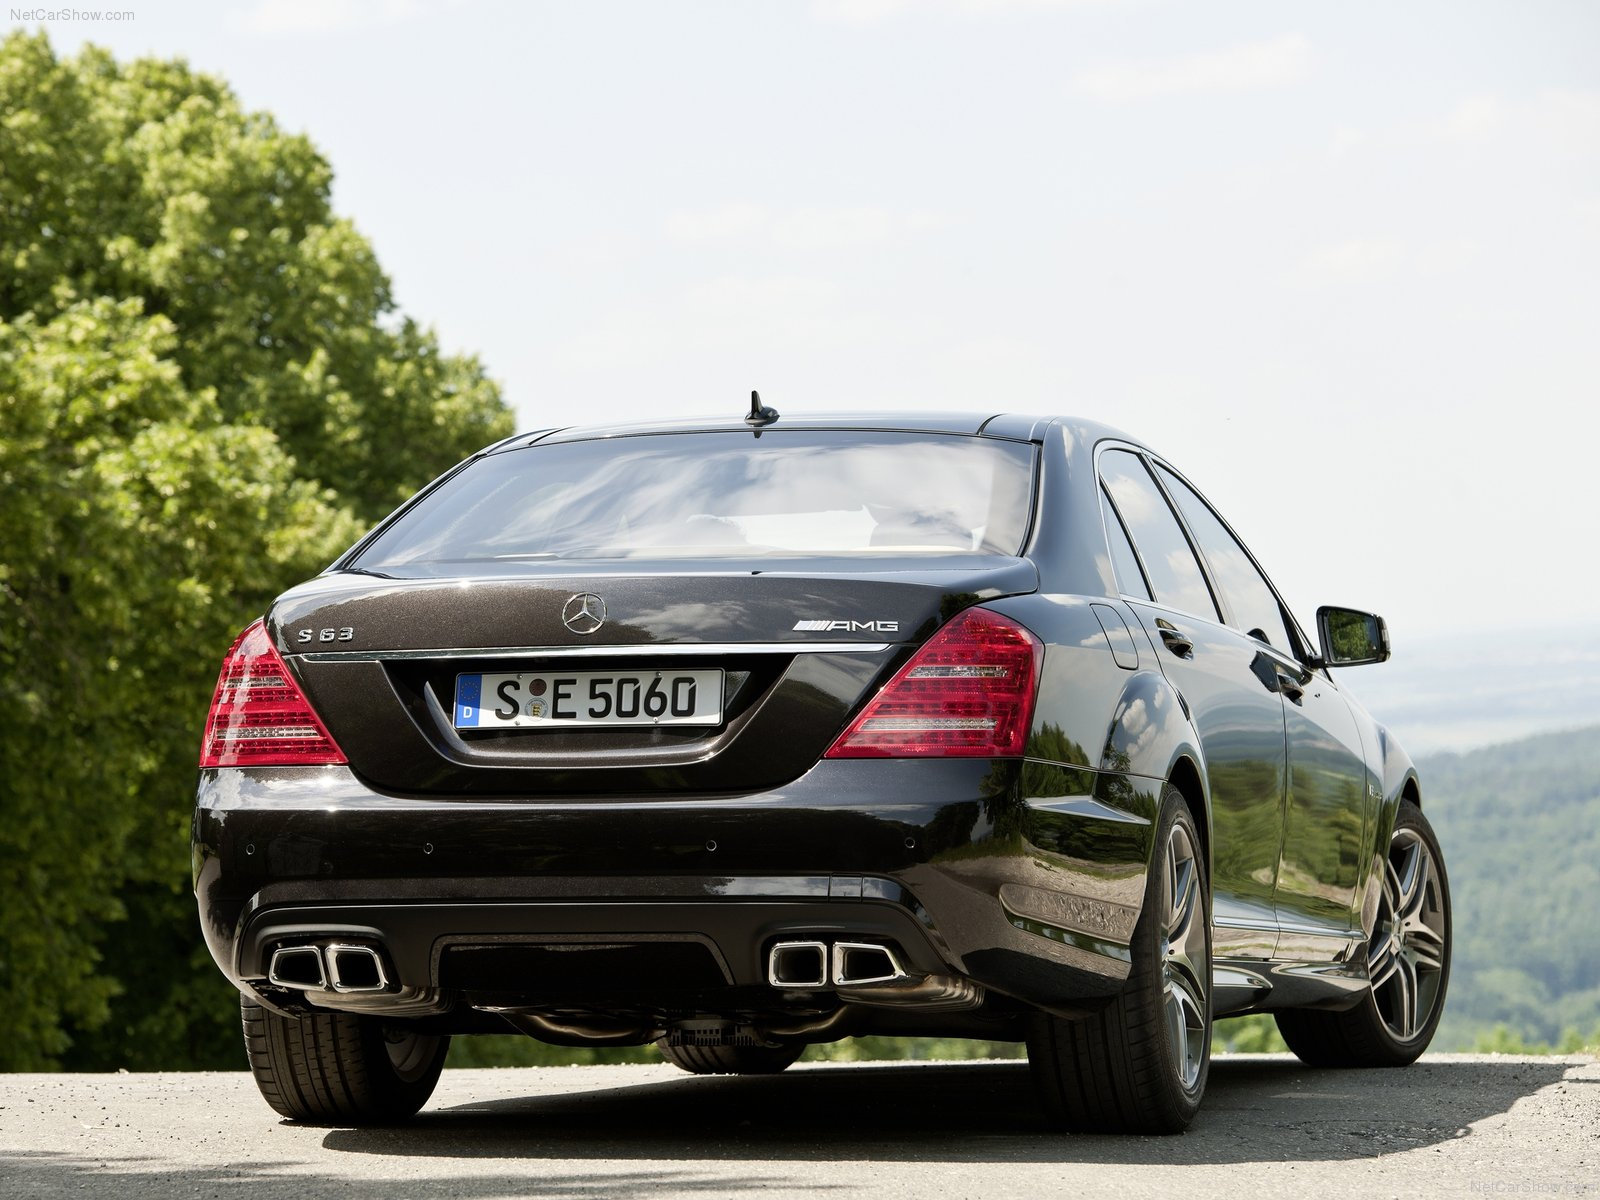 Mercedes Benz S63 AMG photos Gallery Page 14 CarsBase